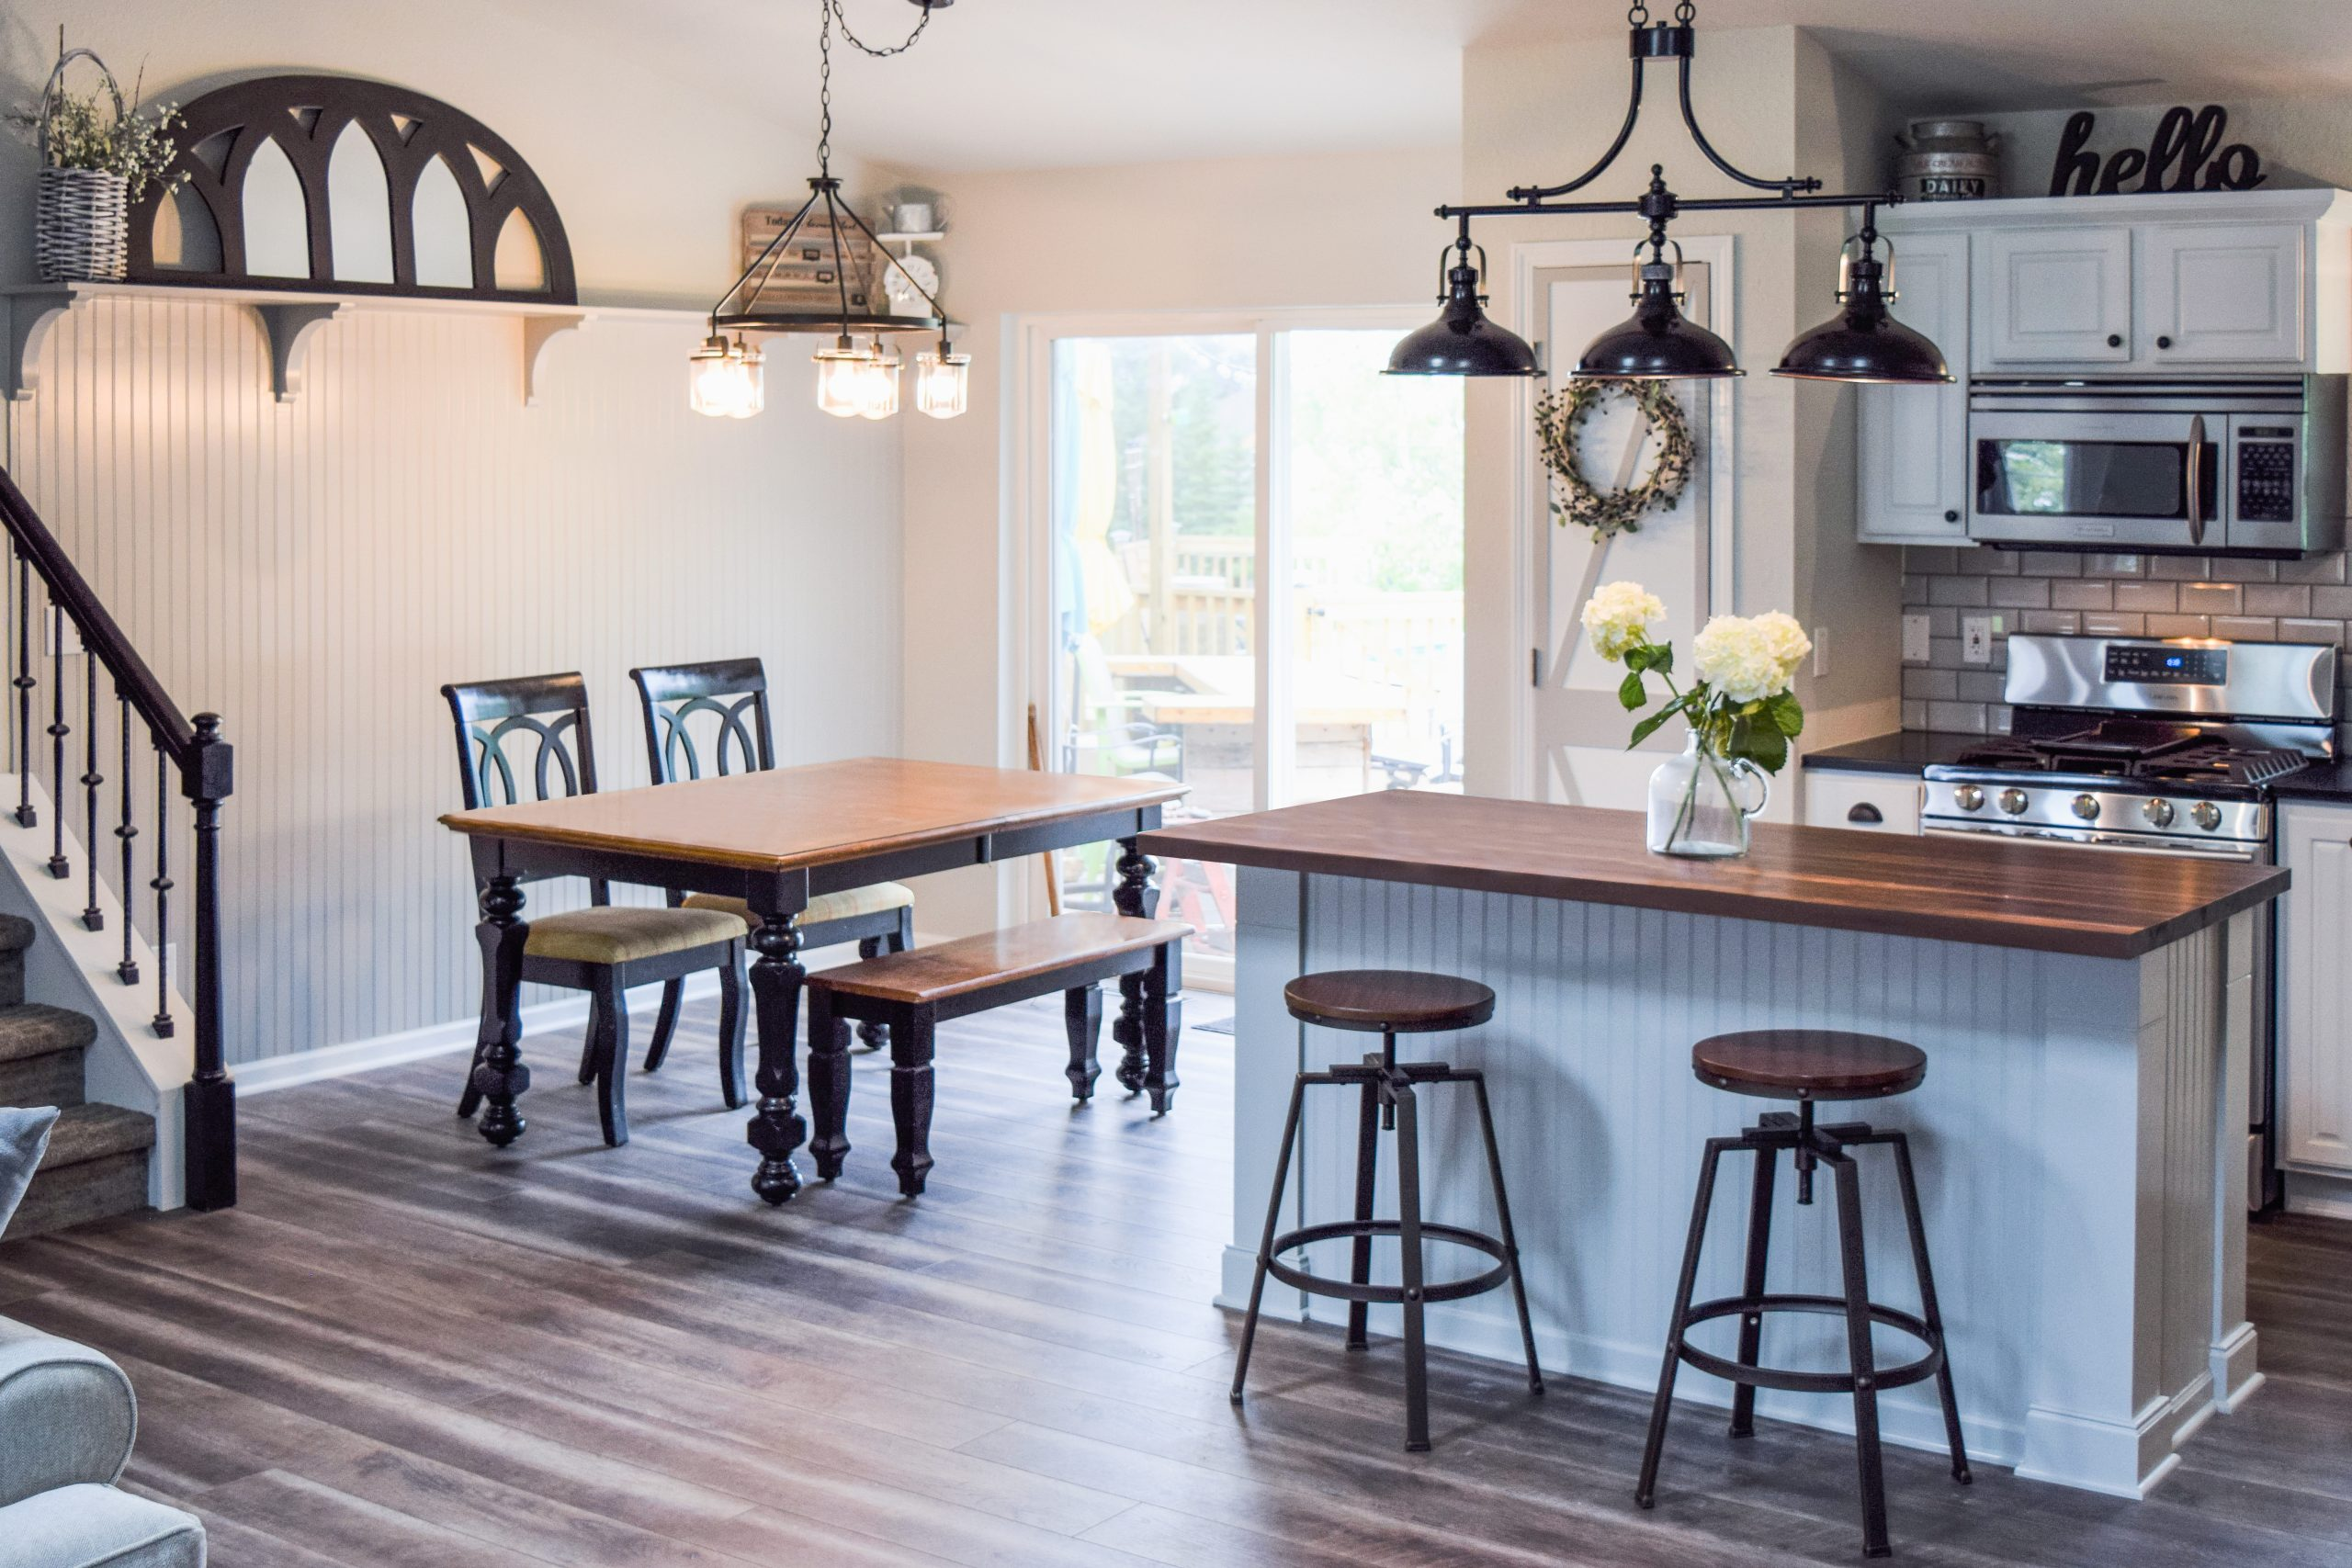 Tennessee Farmhouse Kitchen - Full View